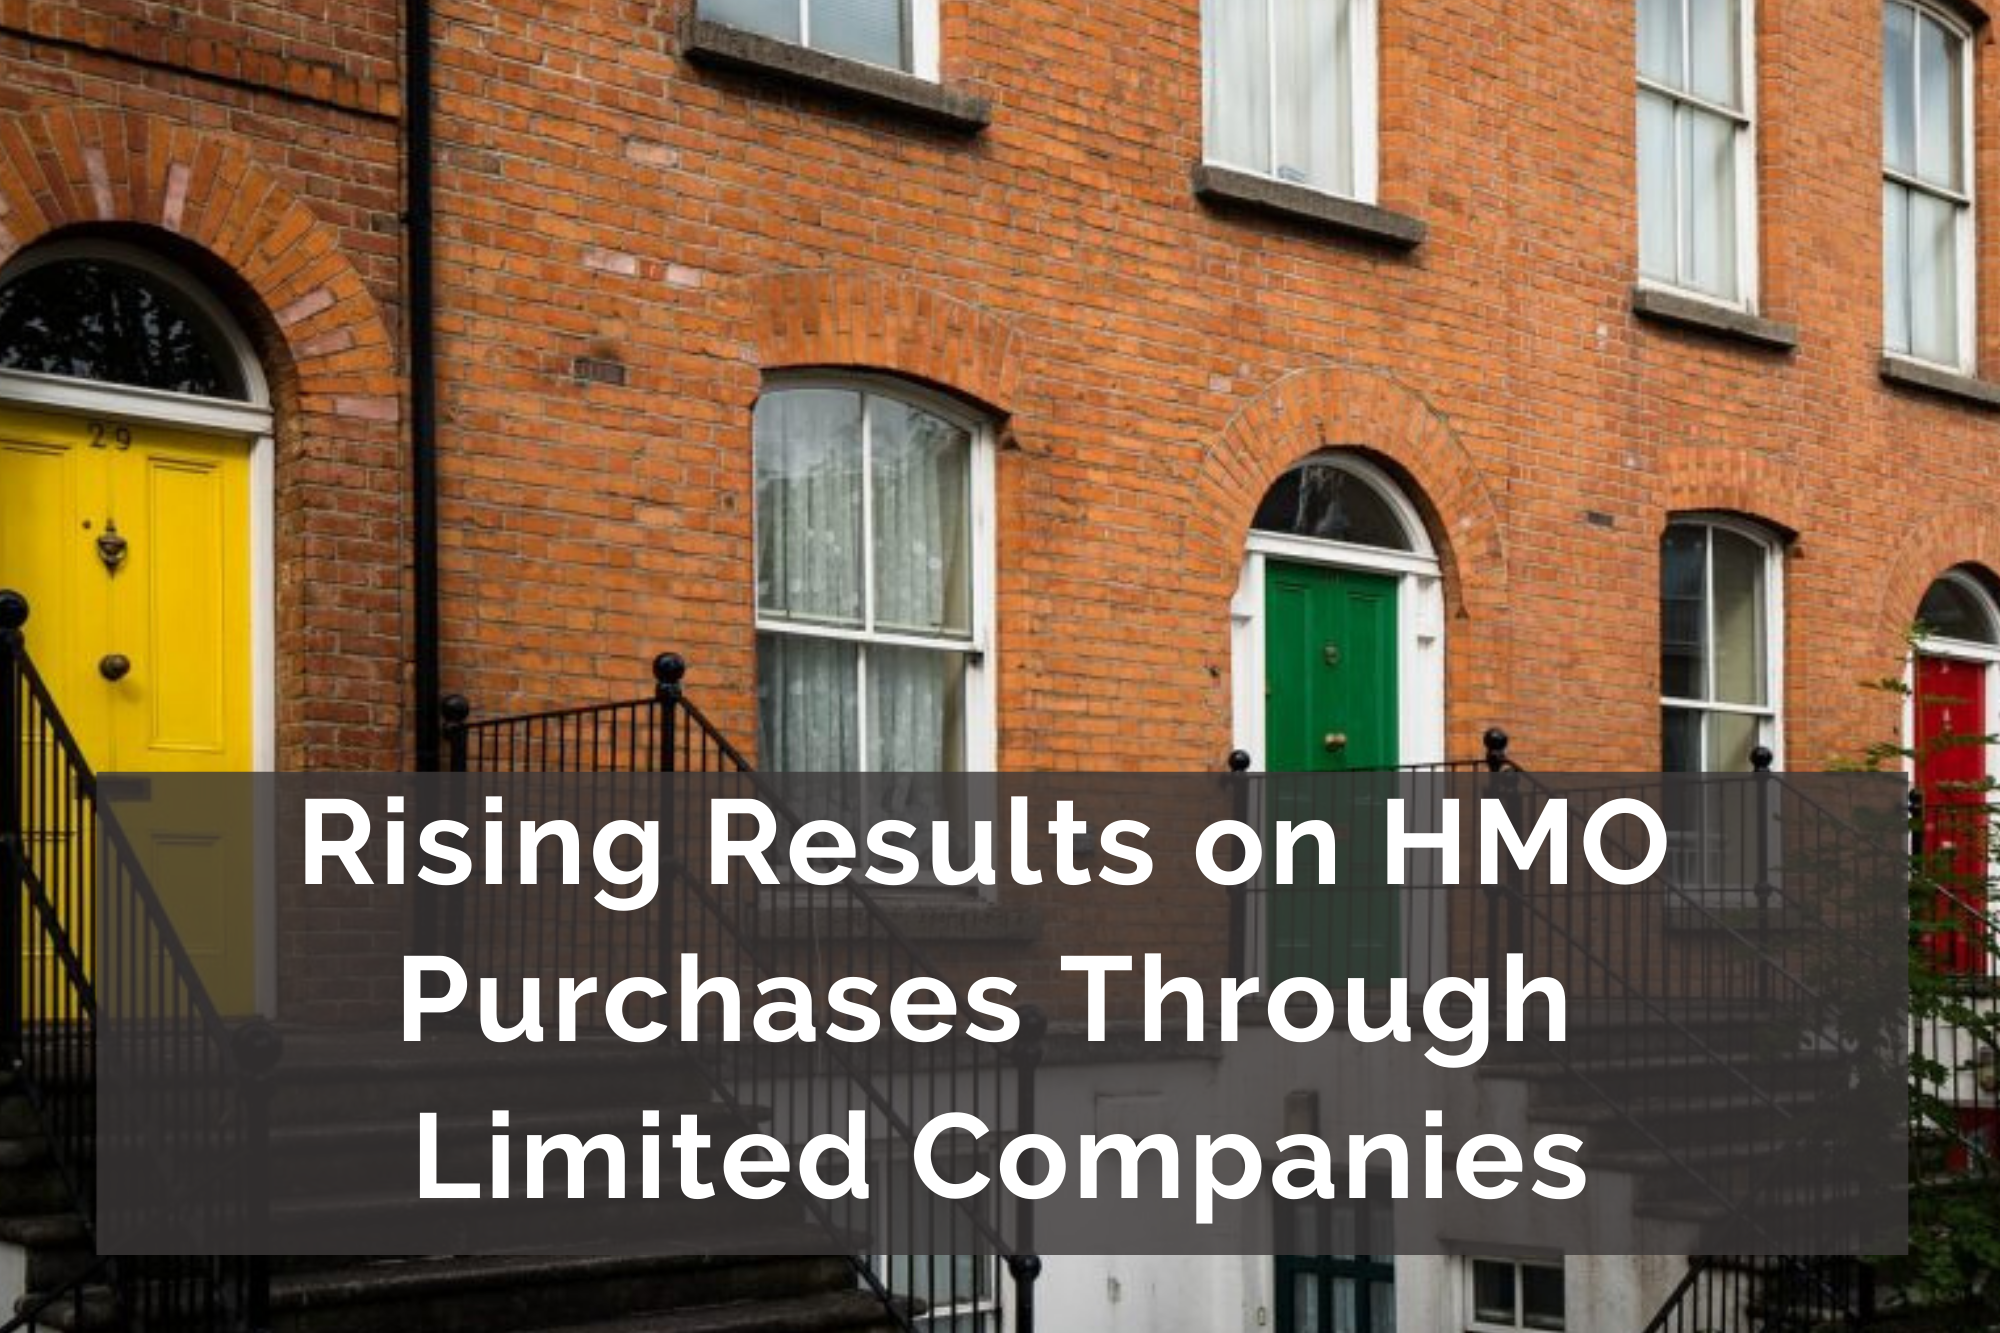 Rising Results on HMO Purchases Through Limited Companies